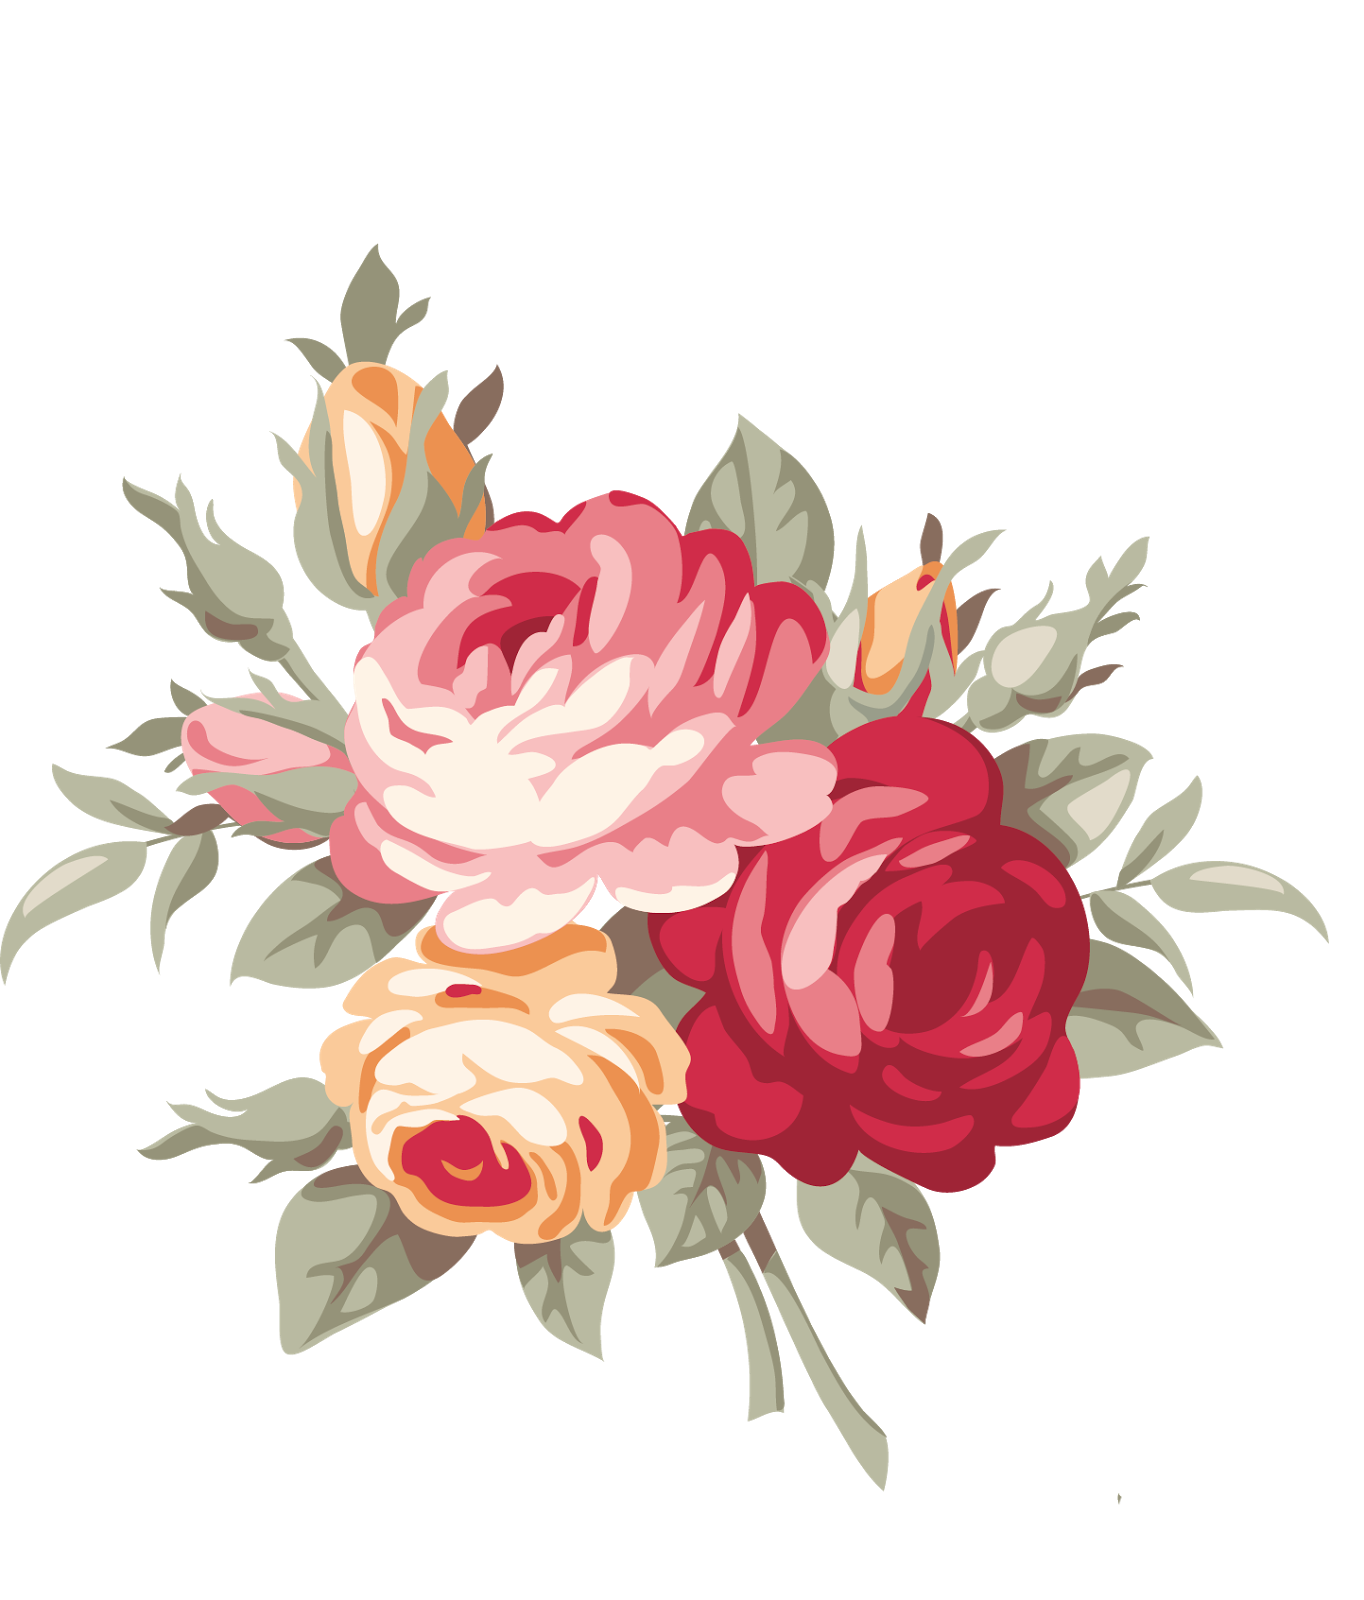 Flower design royalty free. Png floral jpg library stock